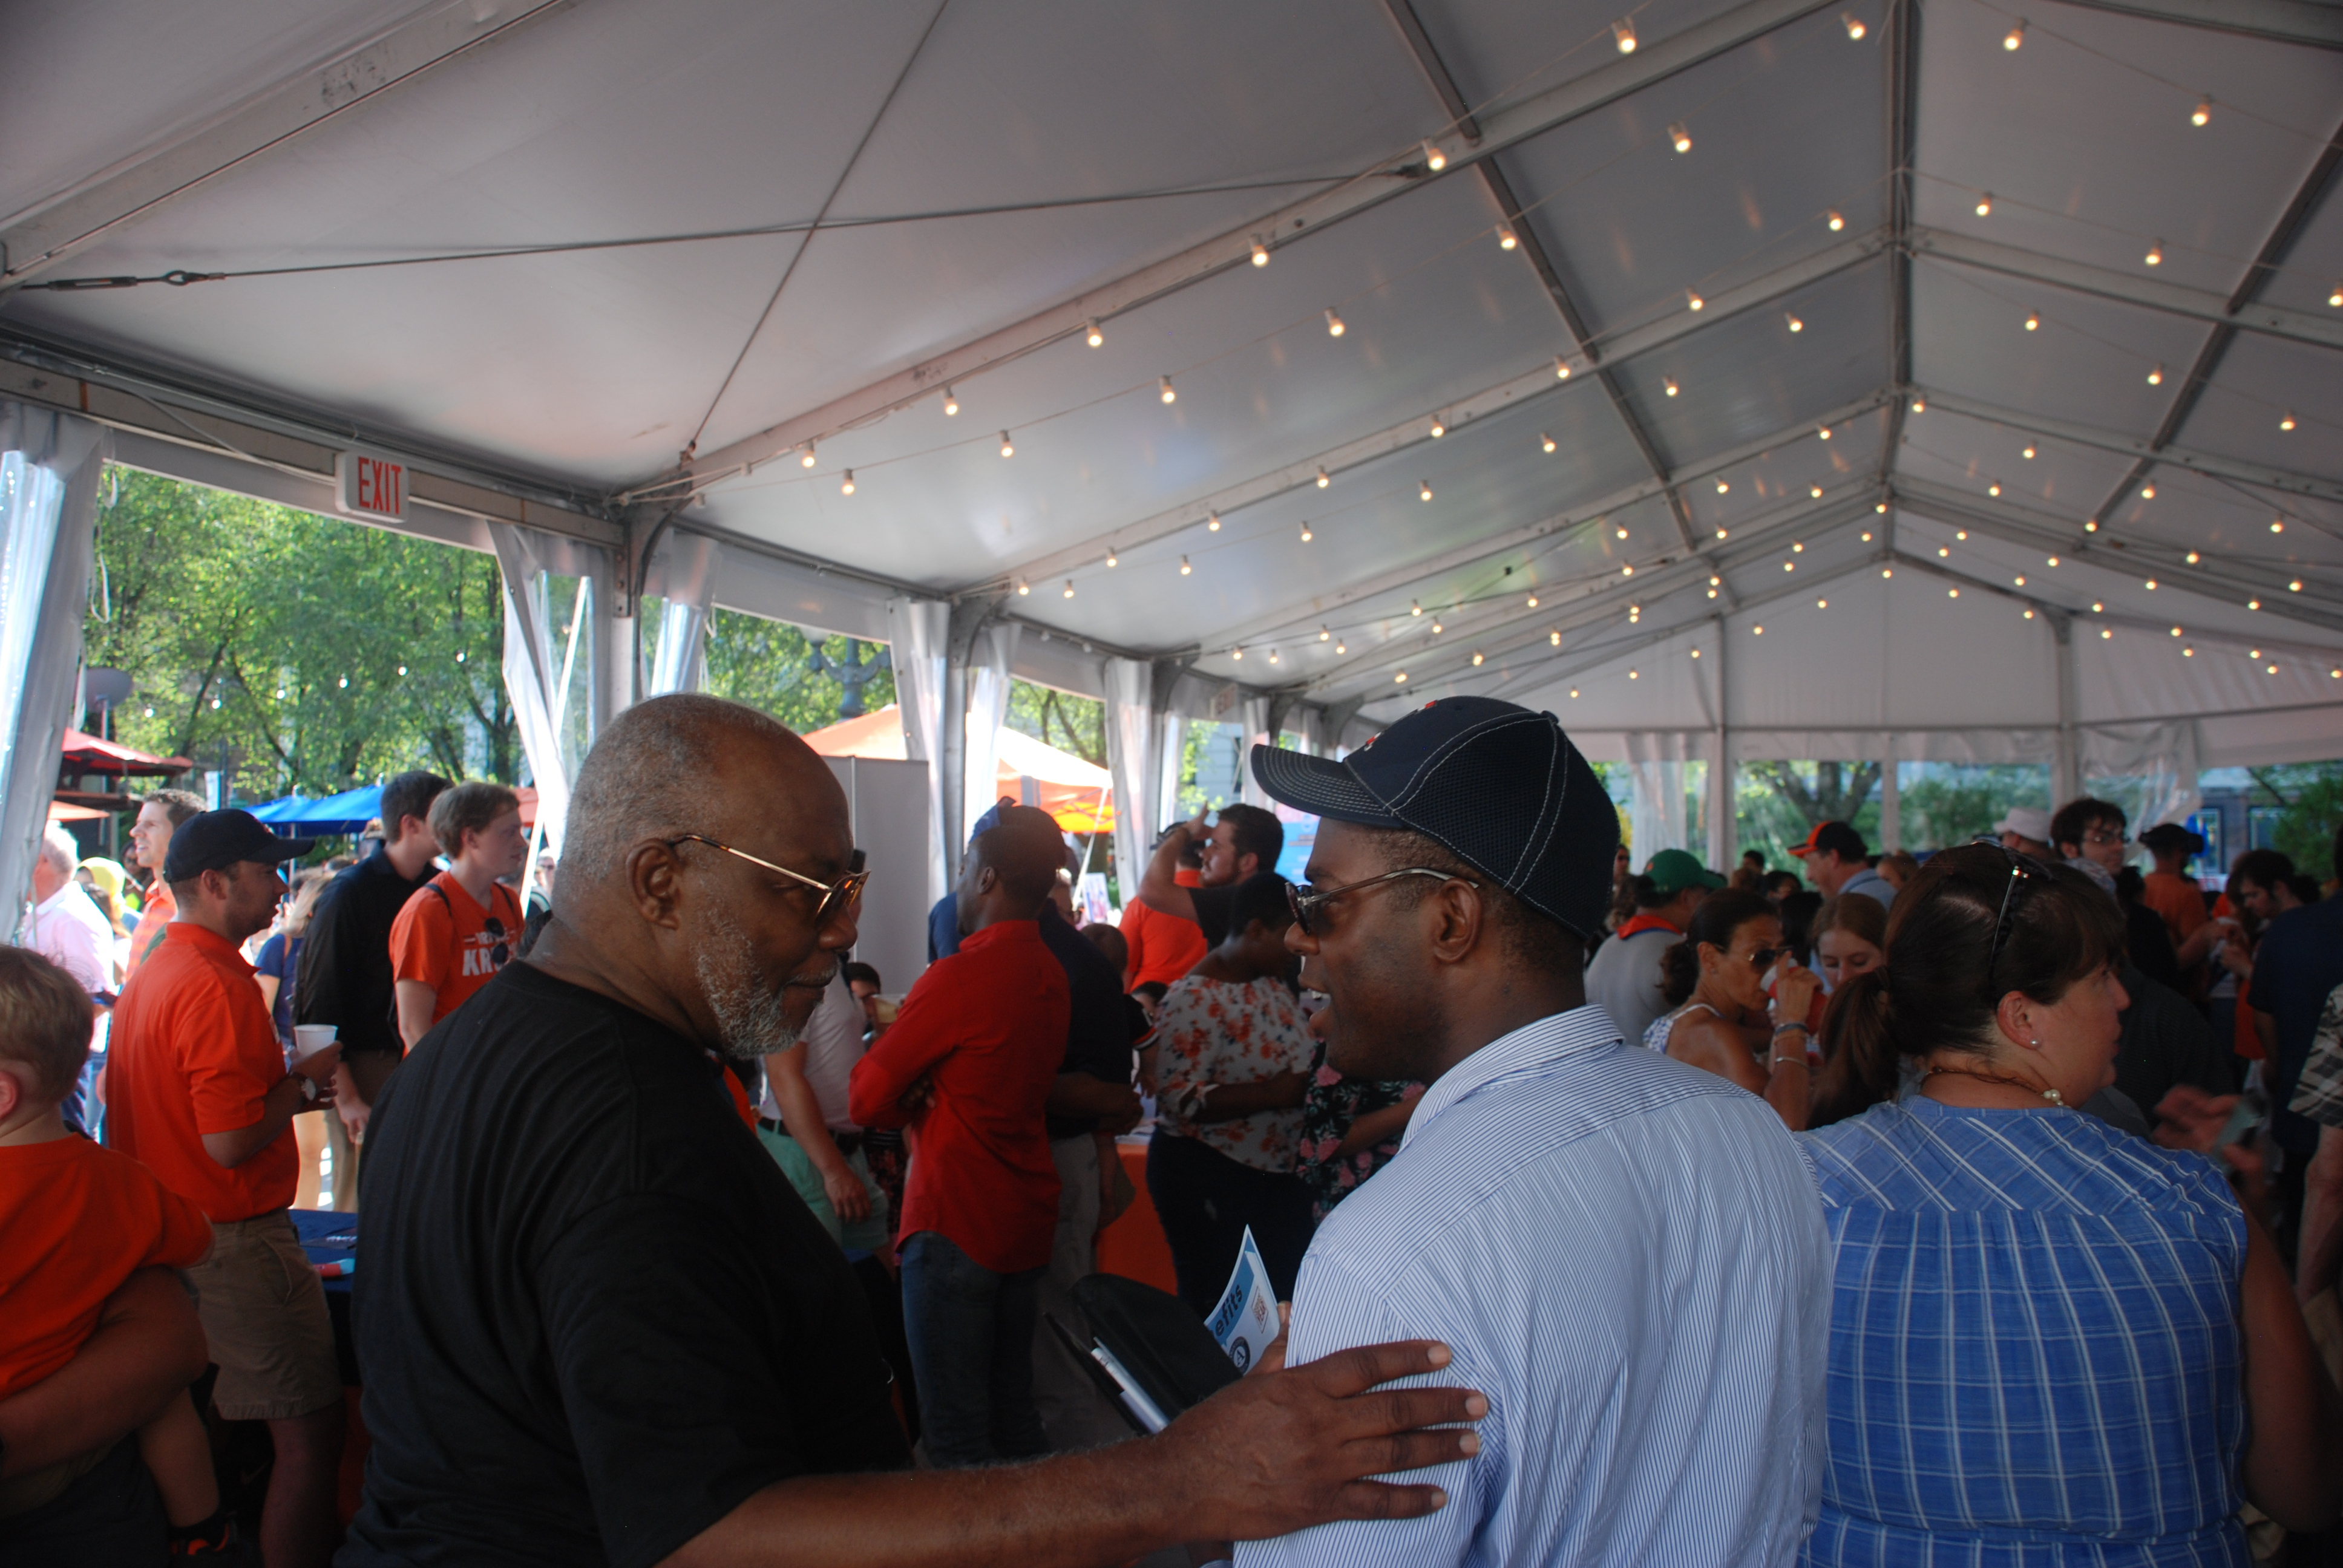 Illini Fest crowd with Dr. Bailey speaking with a visiting colleague in the foreground.